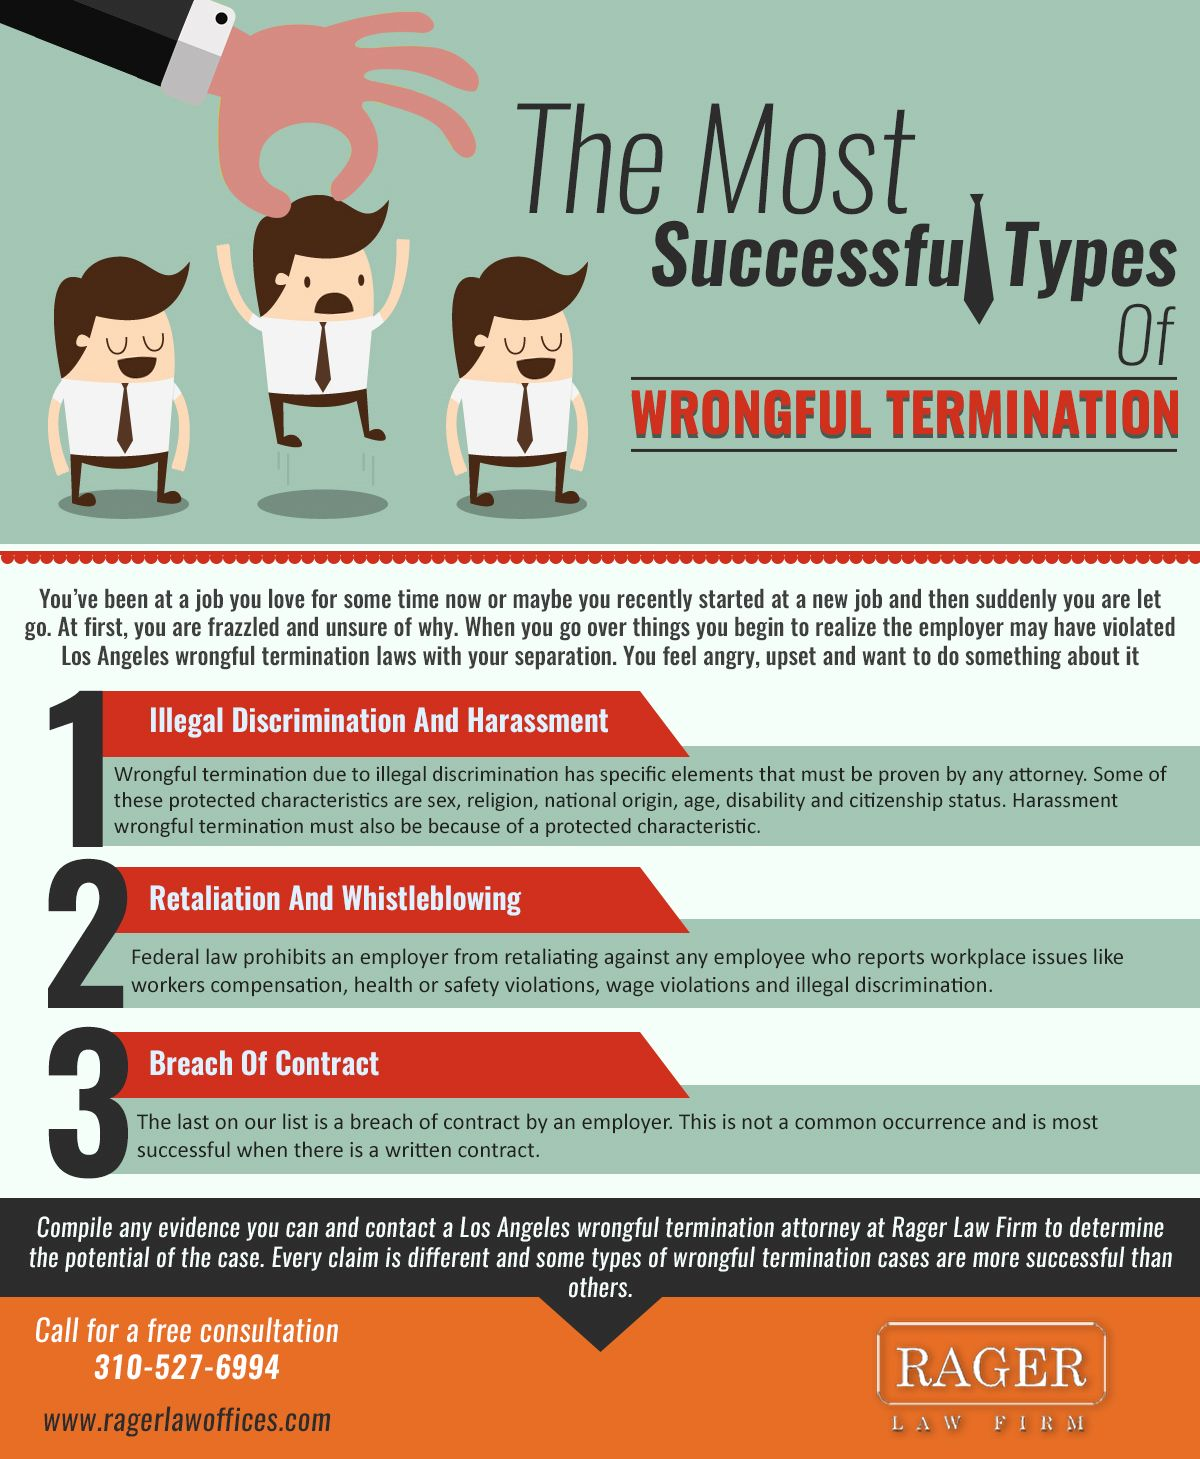 Every Claim Is Different And Some Types Of Wrongful Termination